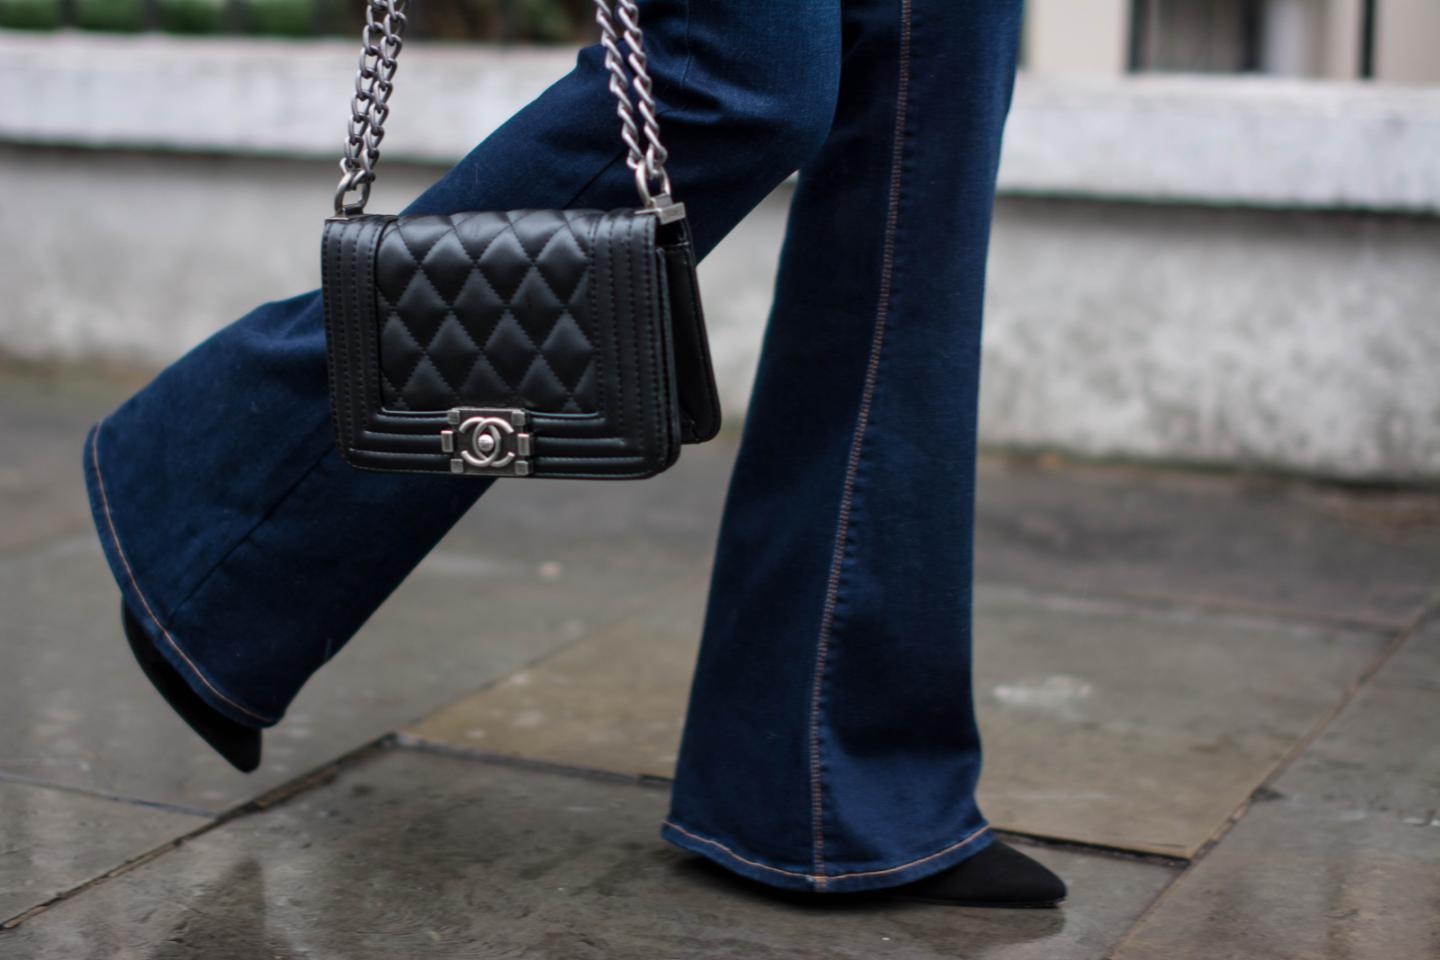 EJSTYLE - Zara flared jeans, Chanel boy bag black small, Street style 2015, Fashion blogger, OOTD, Winter outfit